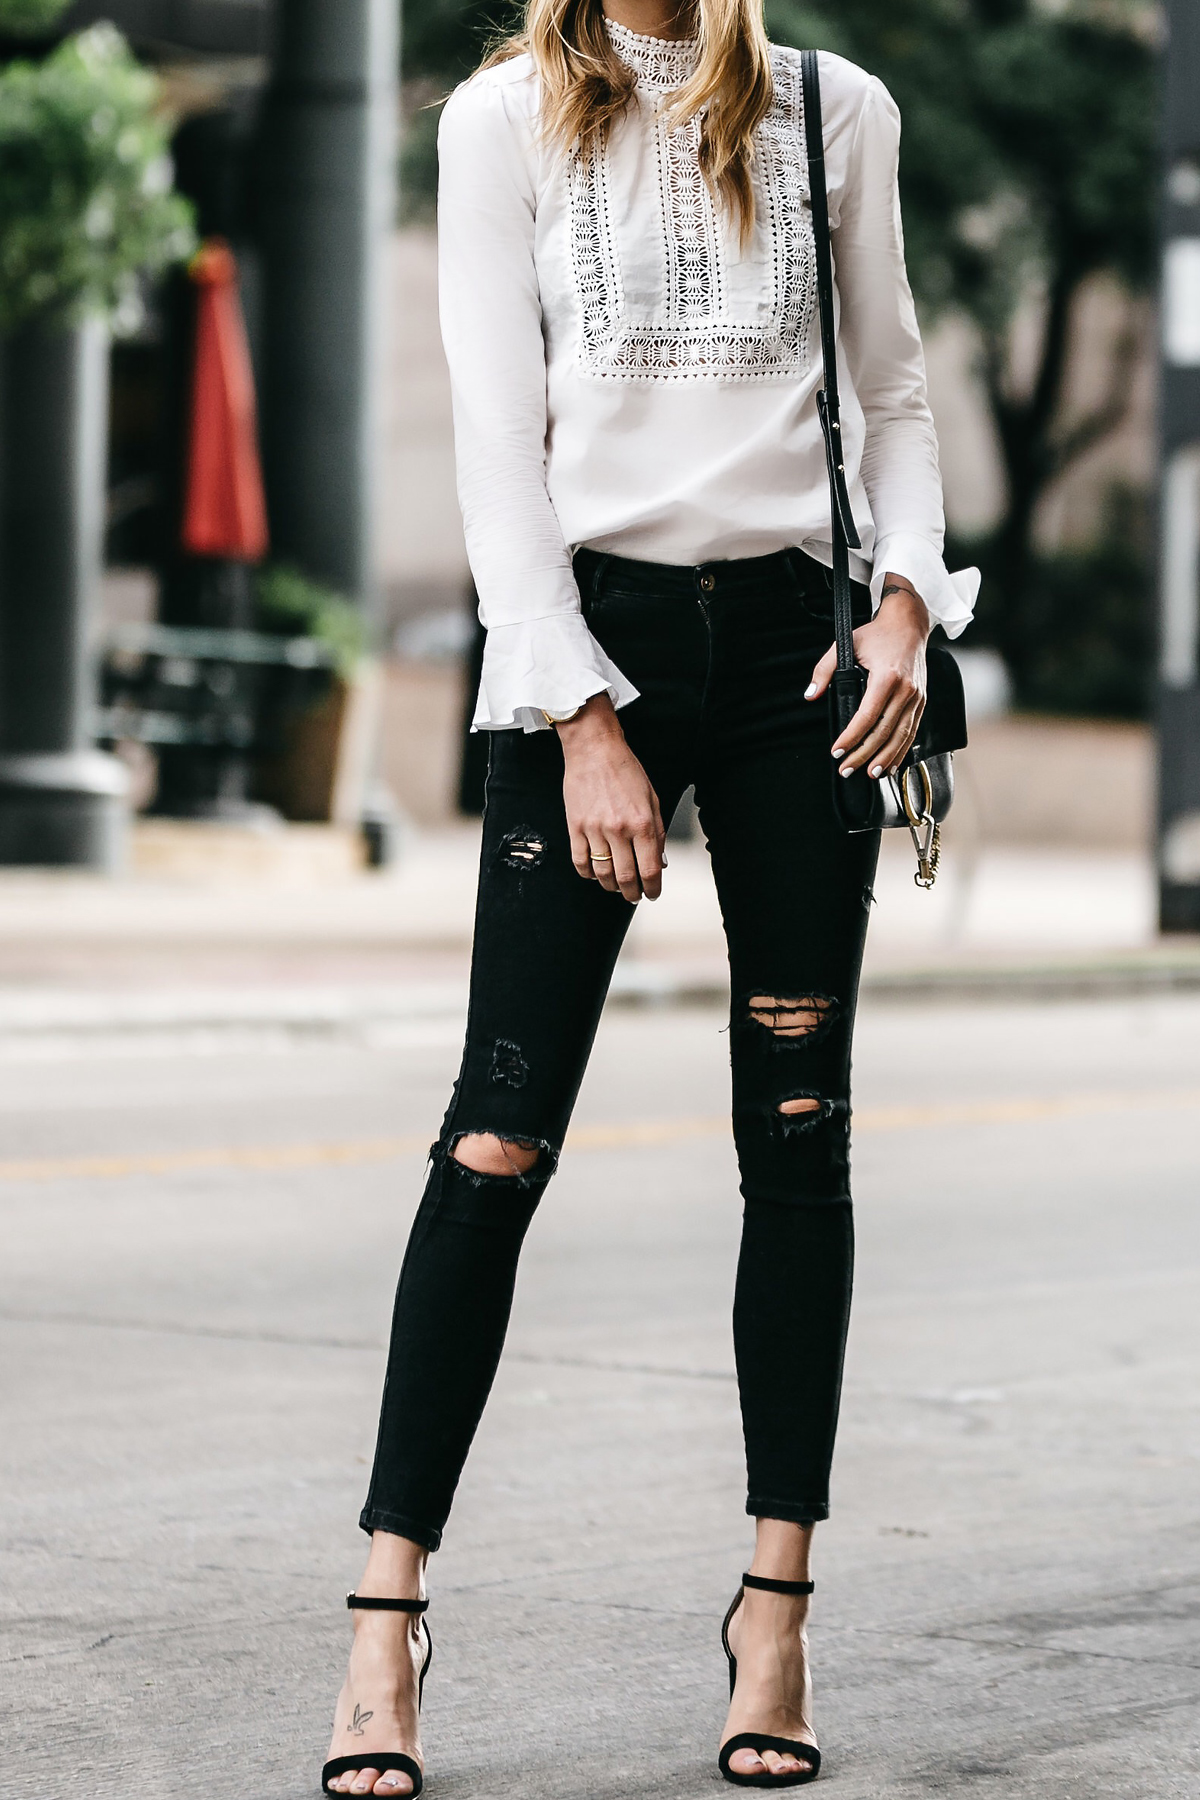 Fashion Jackson, Dallas Blogger, Fashion Blogger, Street Style, White Long Sleeve Bell Sleeve Lace Top, Black Ripped Skinny Jeans, Steve Madden Carrson Heels, Black Ankle Strap Heeled Sandals, Chloe Faye Black Handbag